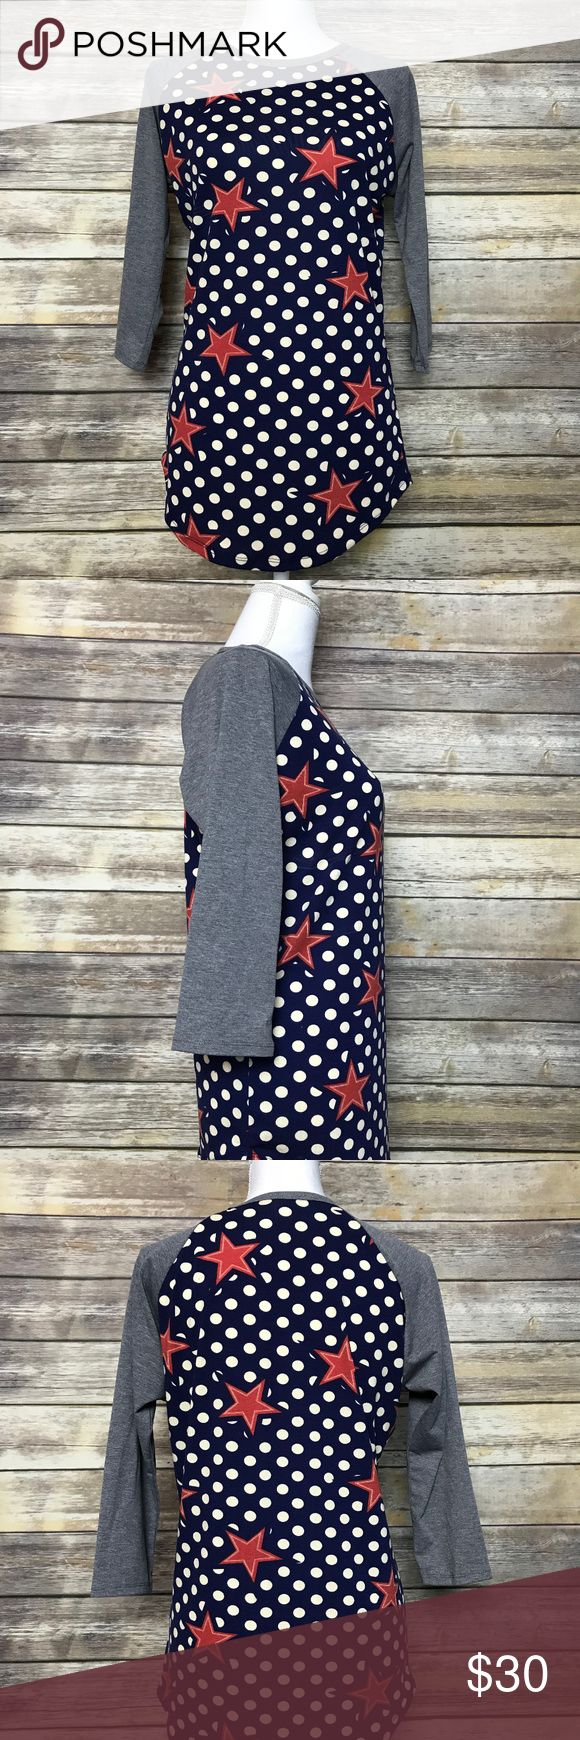 LuLaRoe Polka Dot Star Randy Tee T Shirt Small S LuLaRoe Women's Star Polka Dot Red Blue Gray Randy T Tee Shirt - Size Small S  Excellent condition, brand new without tags! No flaws.  Approximate Measurements: Bust (measured pit to pit): 20 inches  Length (back from middle of neck to hem): 27 inches Sleeve length (middle of neck to cuff): 24 inches  E45 LuLaRoe Tops Tees - Long Sleeve